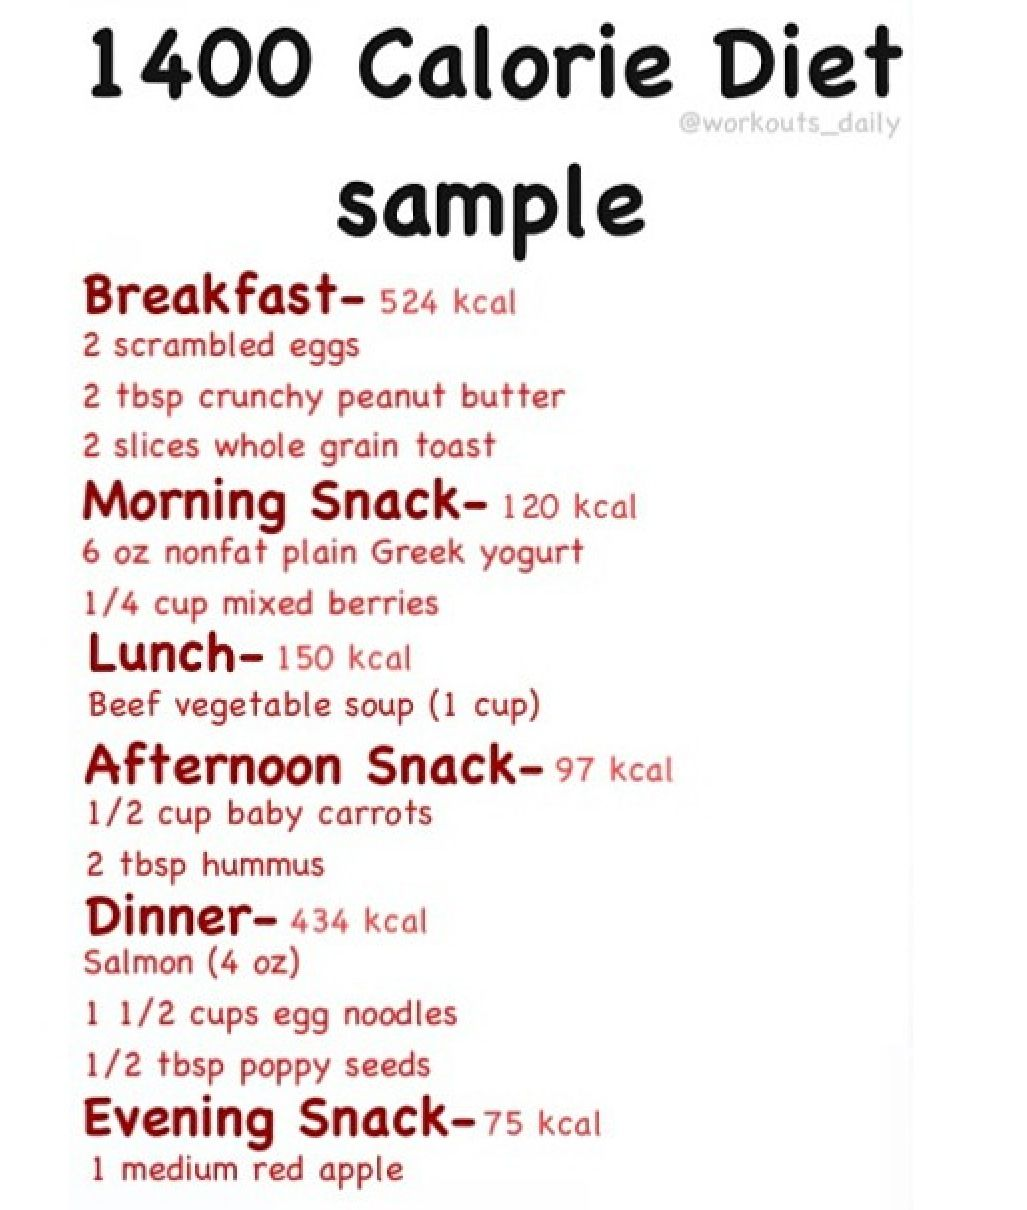 1400 Calorie Diet Sample | Low Calorie | Pinterest | Calorie diet, Meals and Weight loss